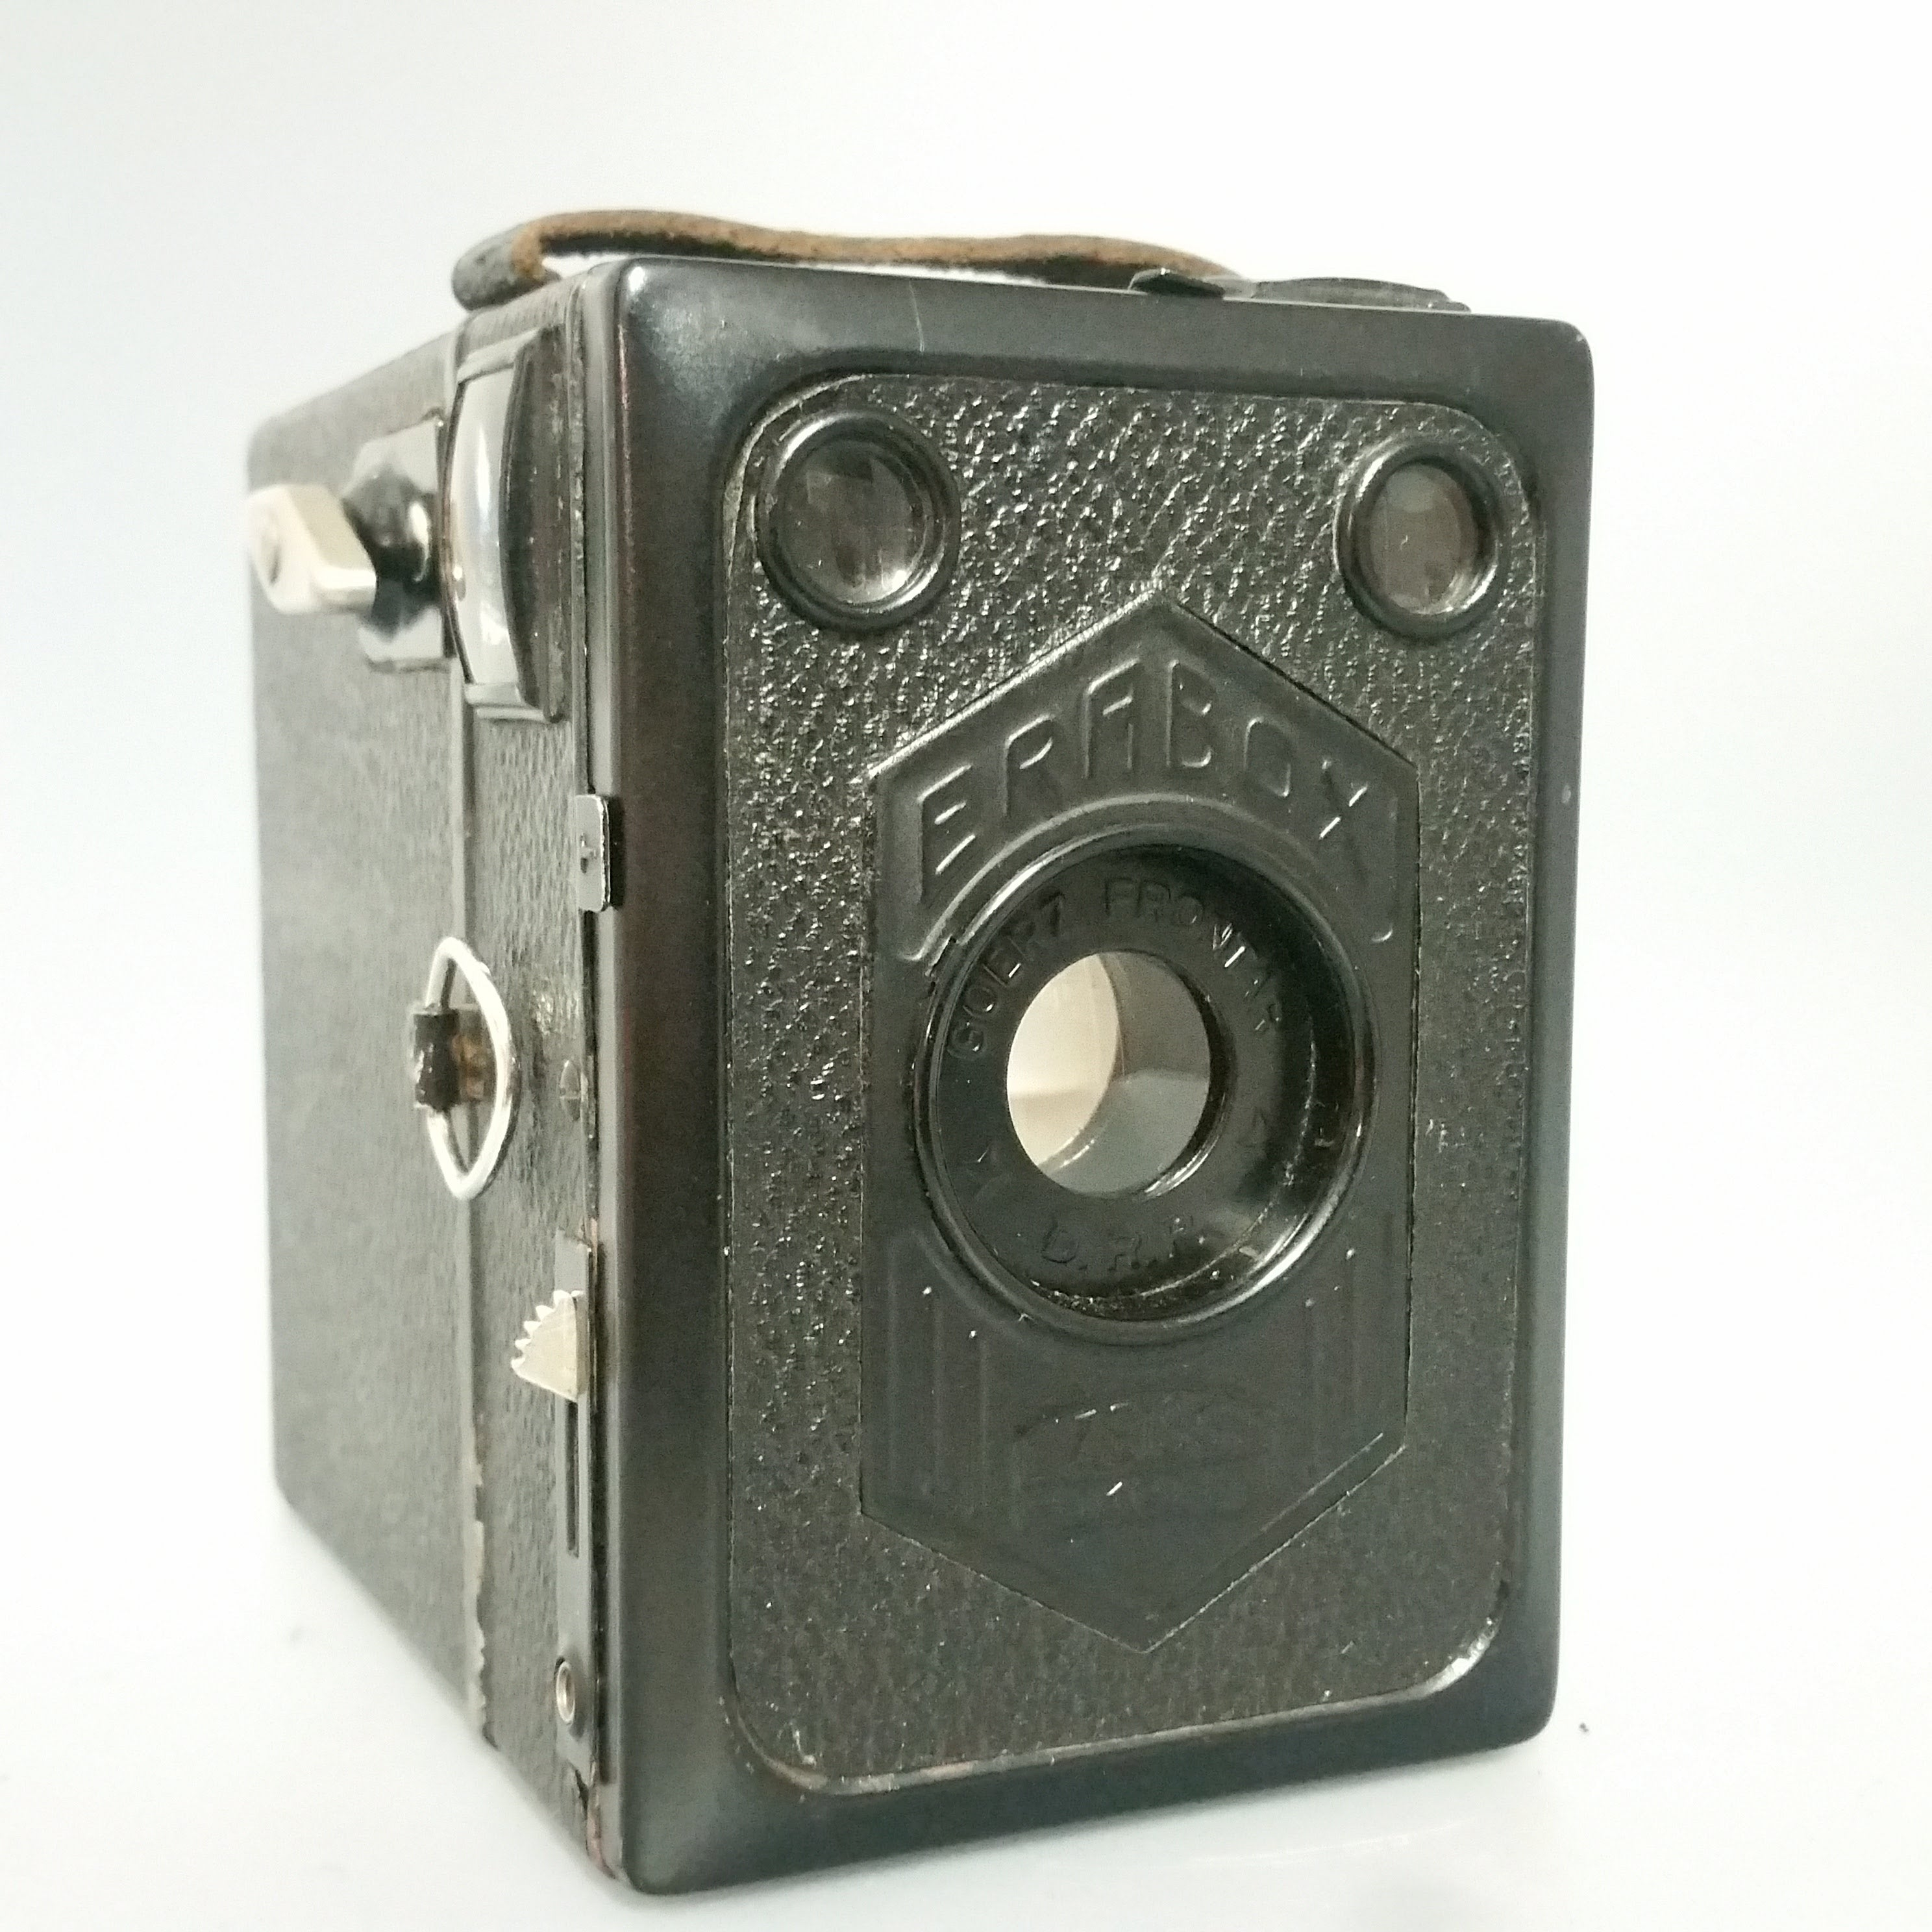 Zeiss-Ikon ERA Box, 120 Roll Film, box camera,  Medium Format